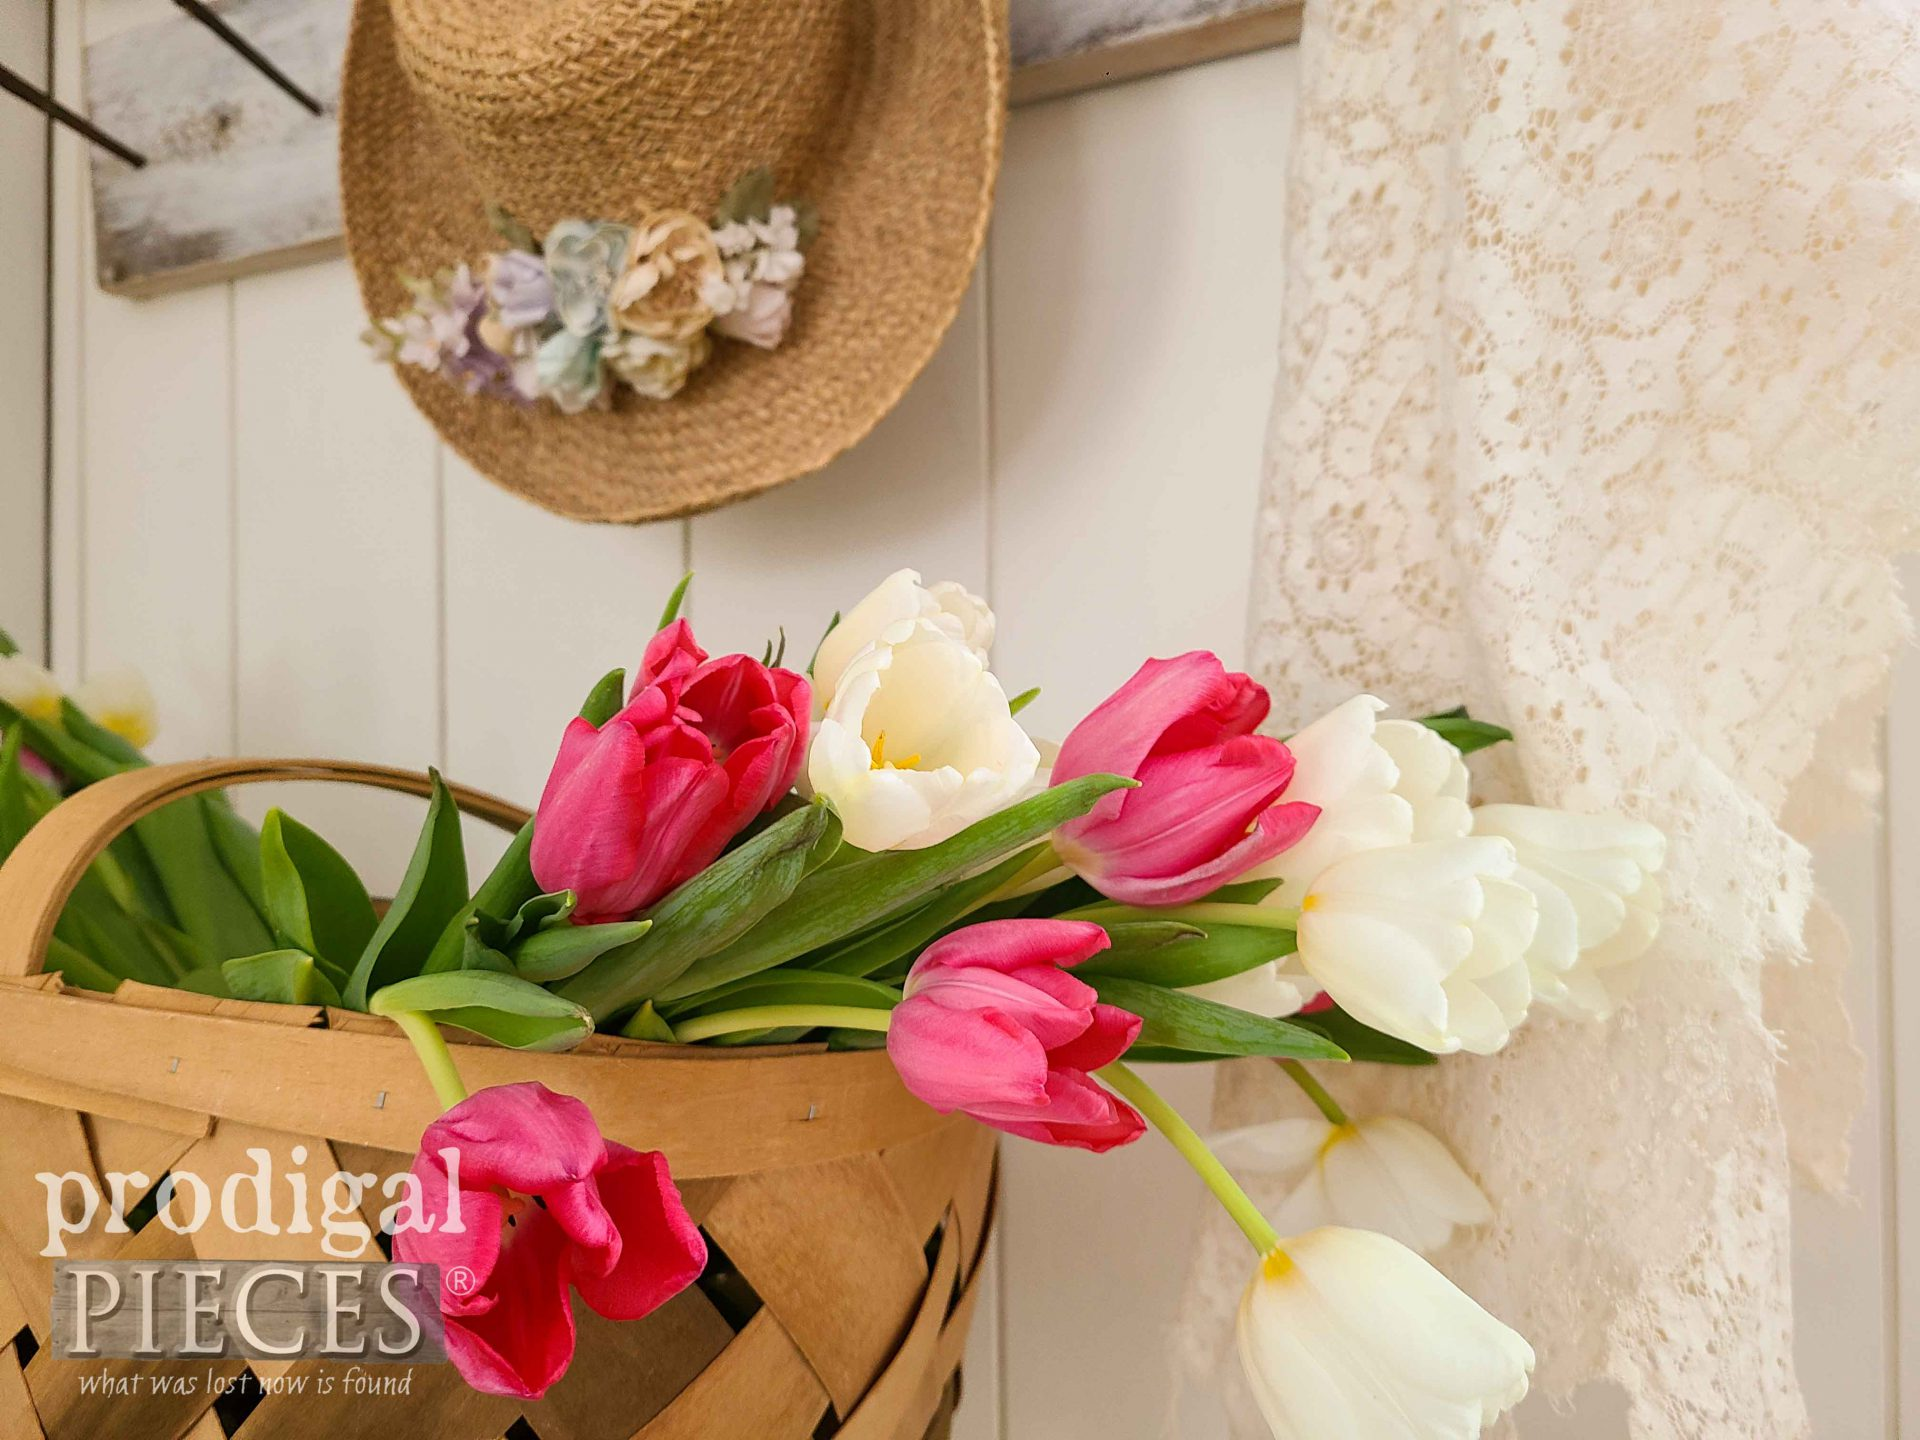 Basket of Fresh Tulips for Spring Decor by Larissa of Prodigal Pieces | prodigalpieces.com #prodigalpieces #spring #diy #home #homedecor